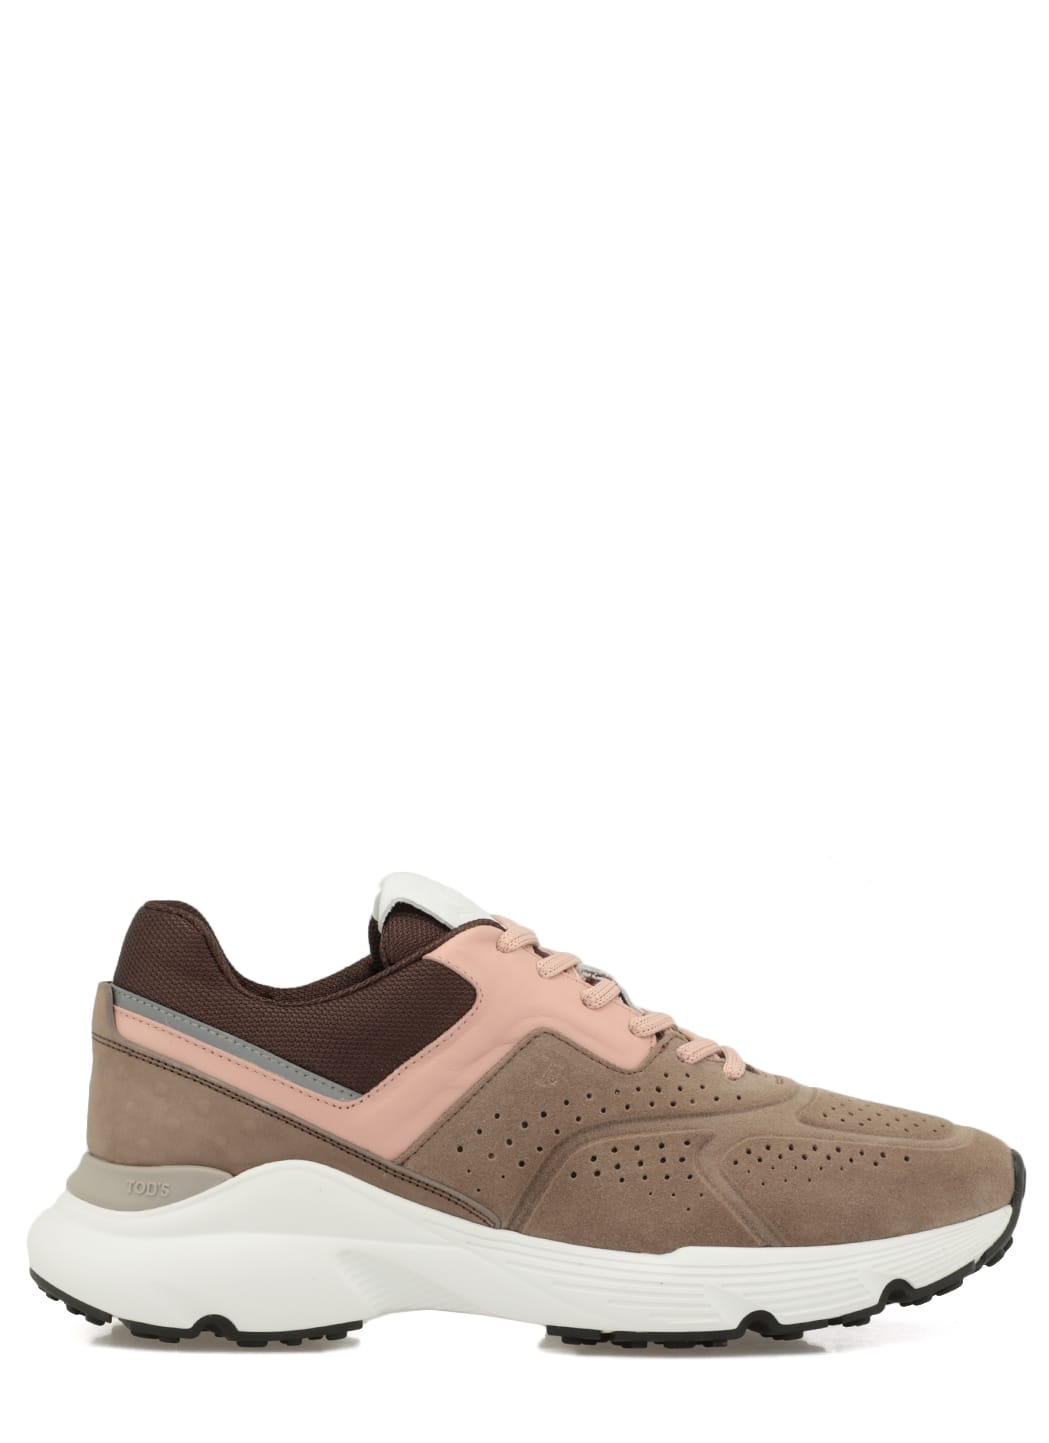 Tods Leather And Fabric Sneaker